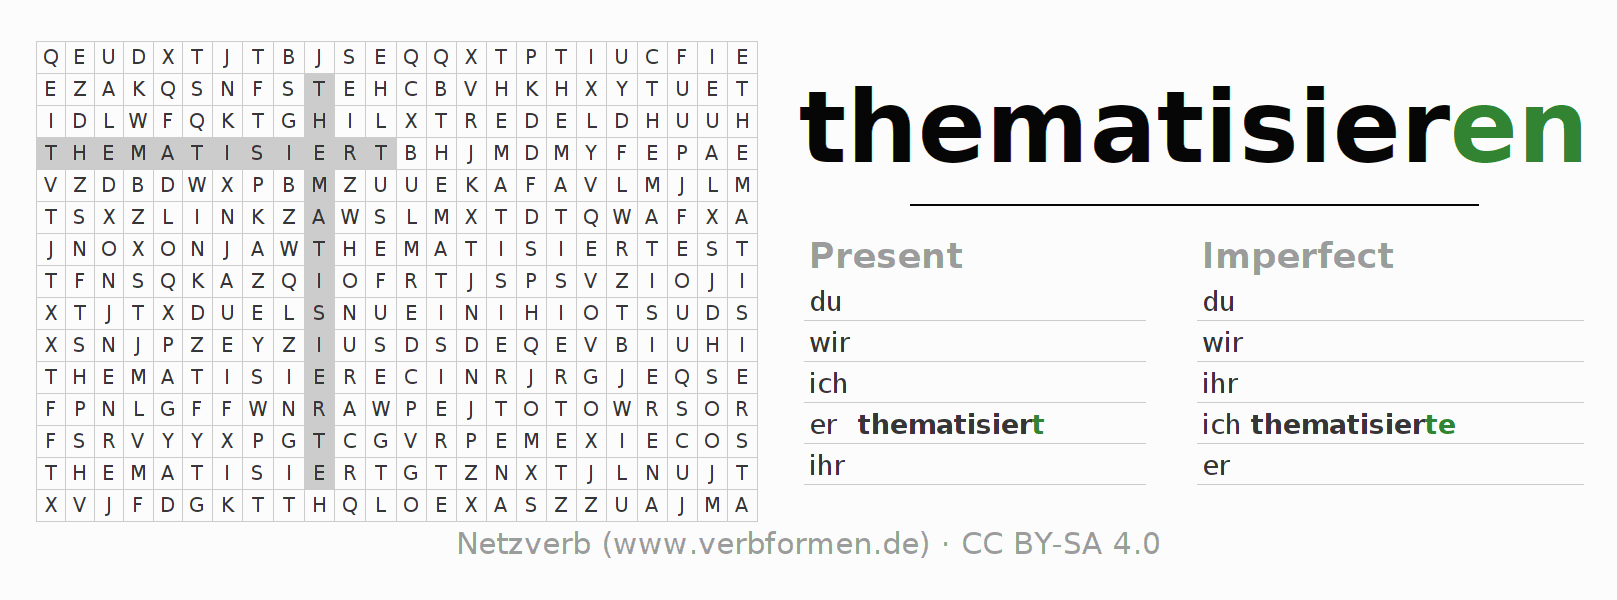 Word search puzzle for the conjugation of the verb thematisieren